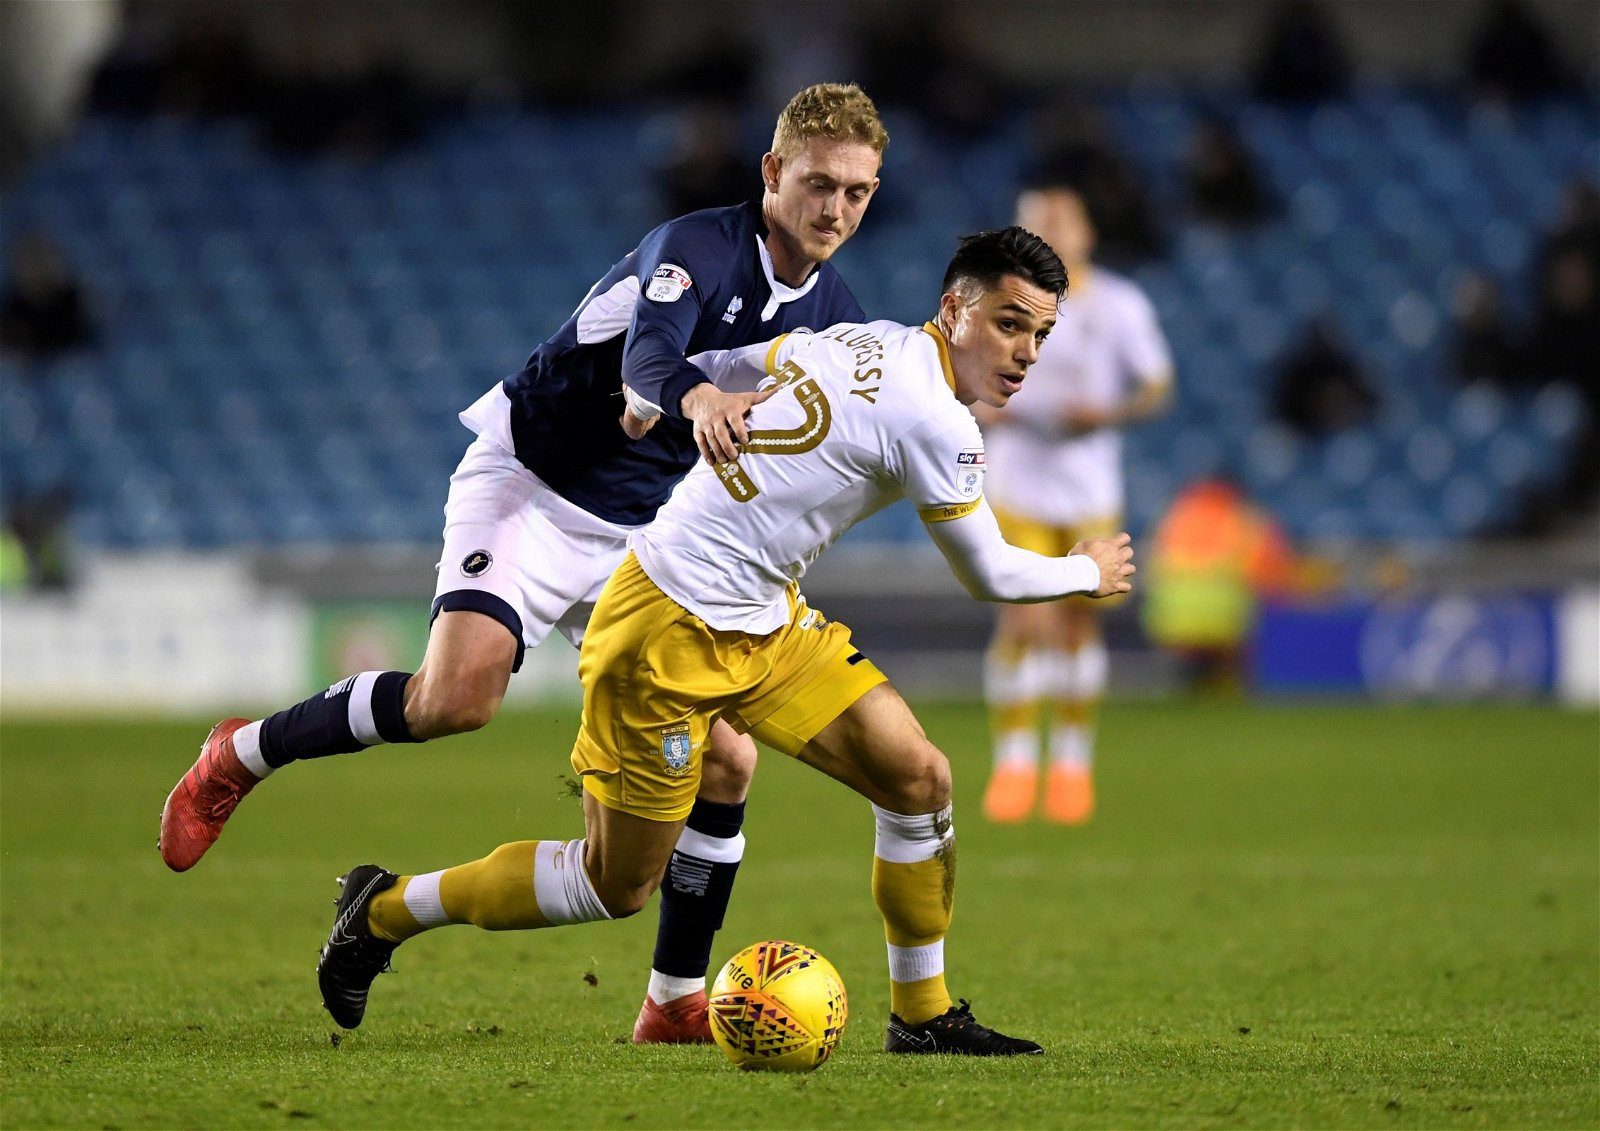 George Saville for Millwall vs Sheffield Wednesday